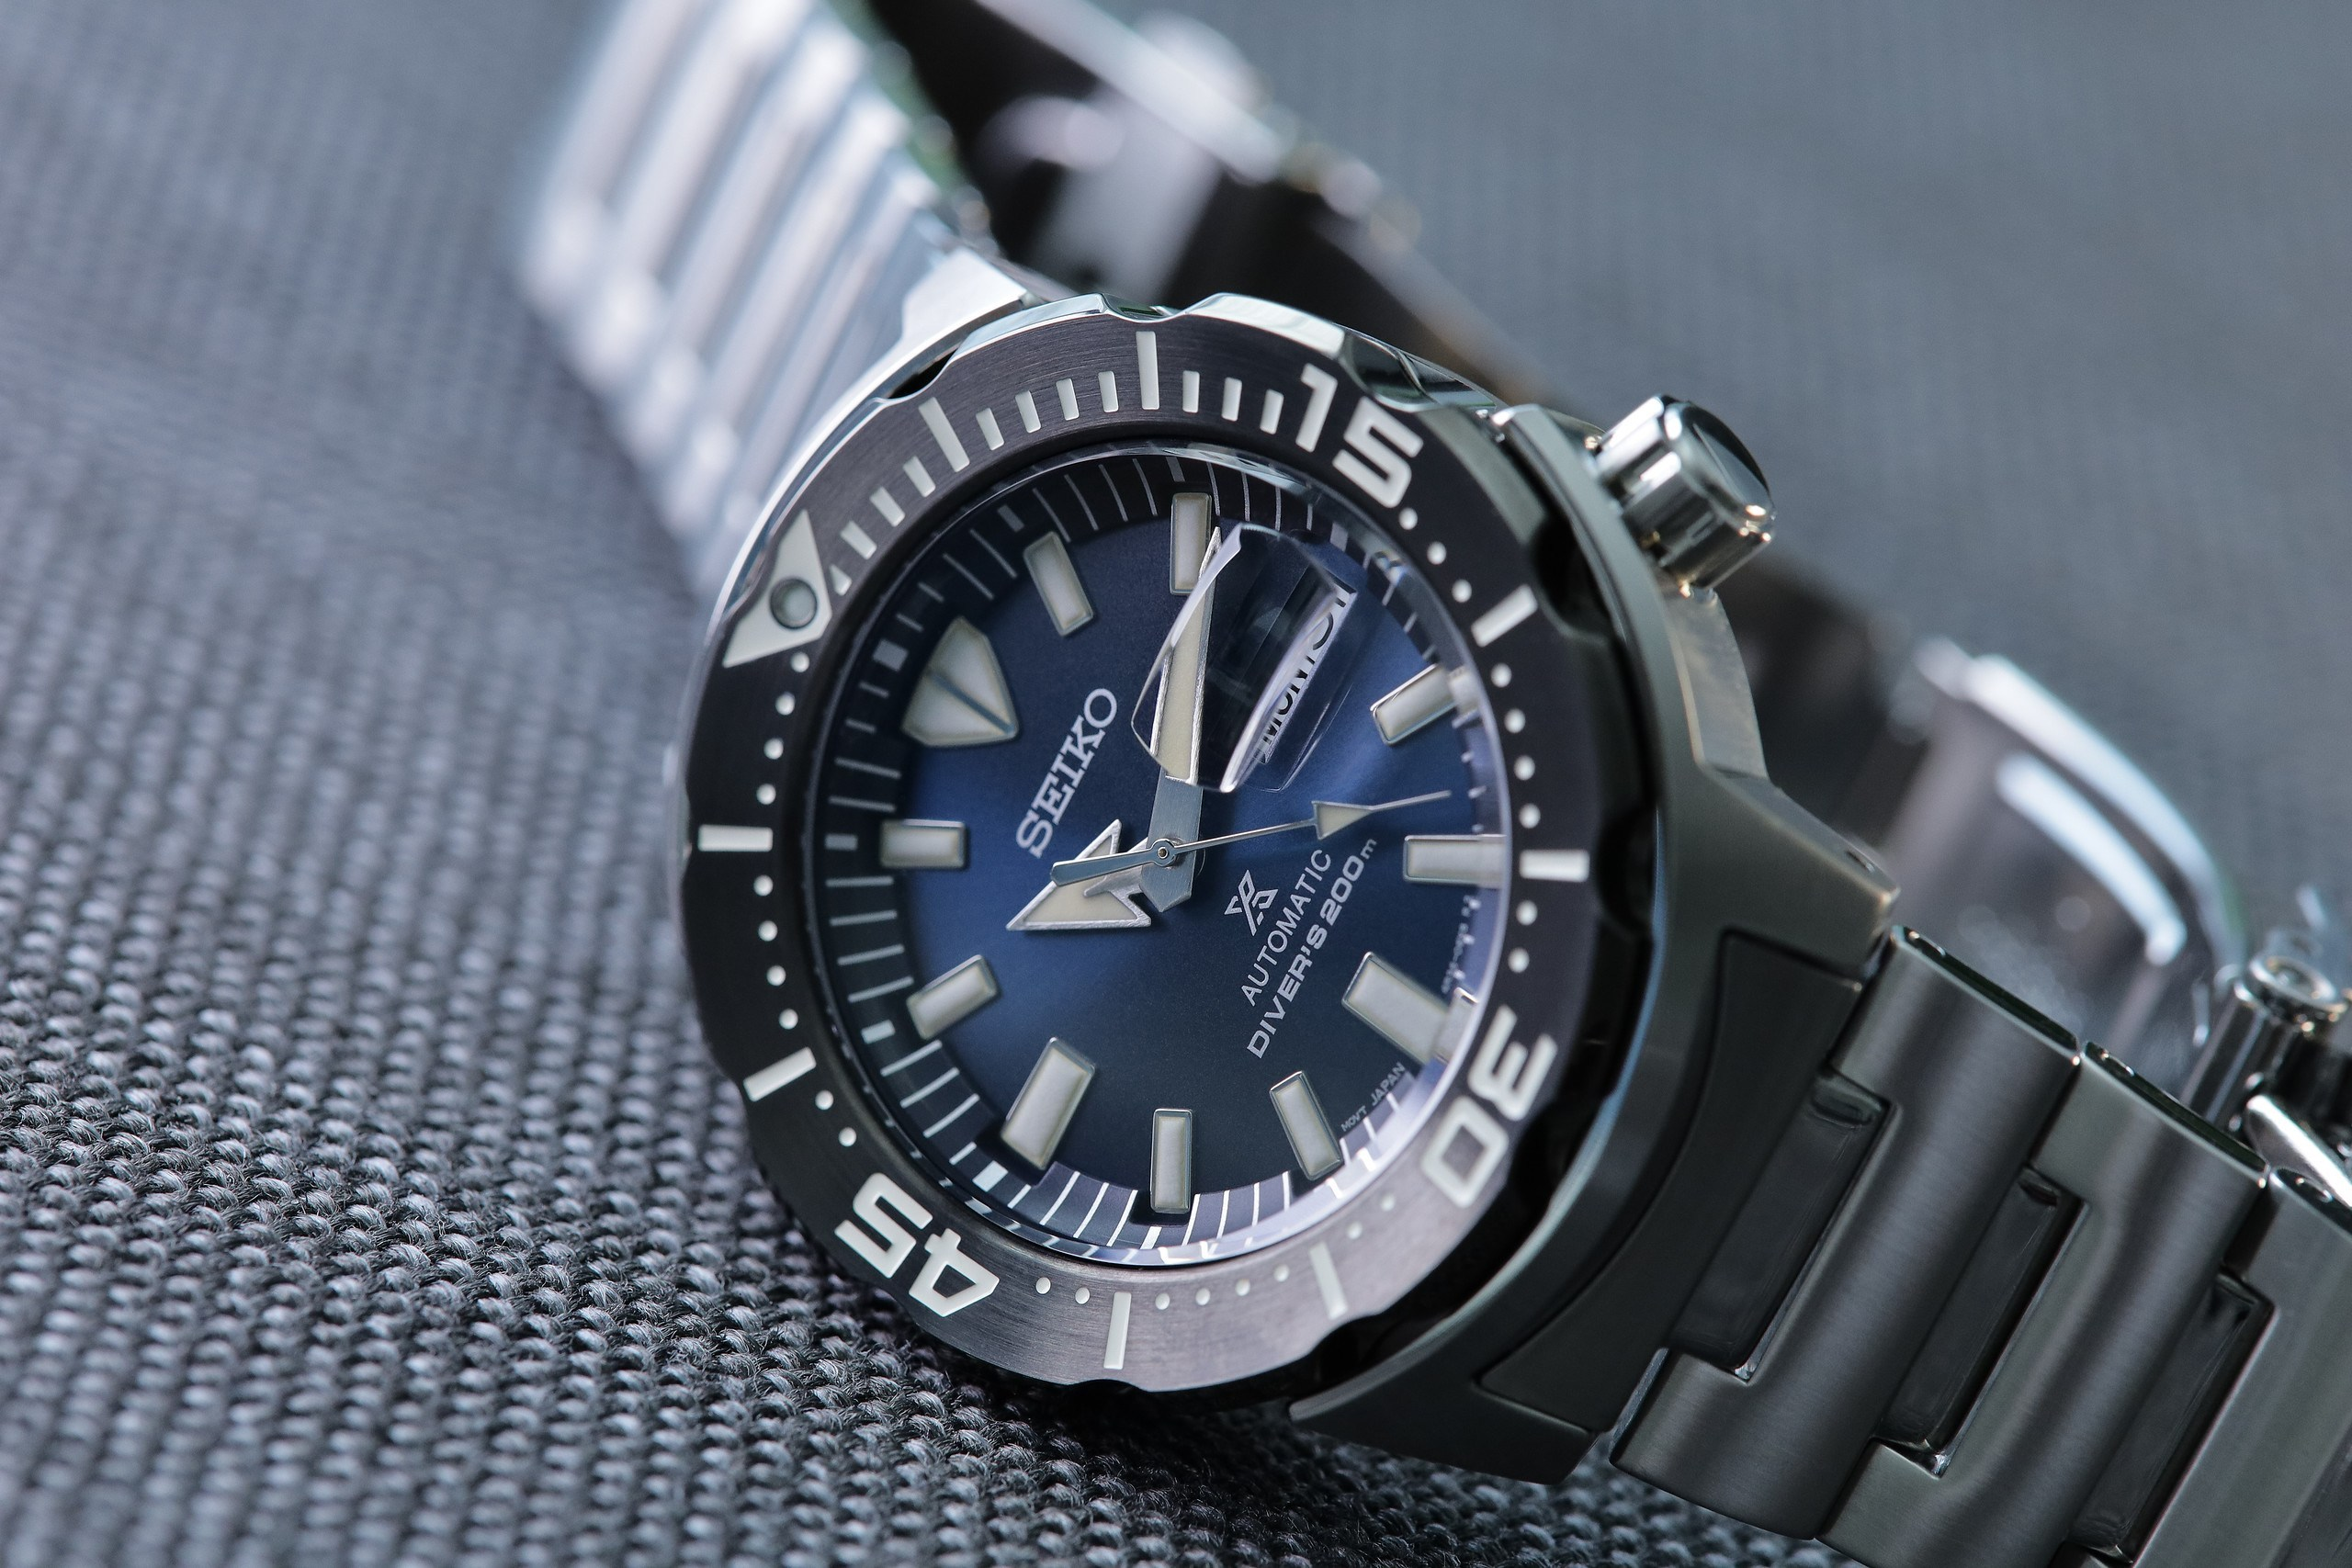 Seiko-Prospex-SRPD25-Monster-Automatic-Diver-angled-side.jpg